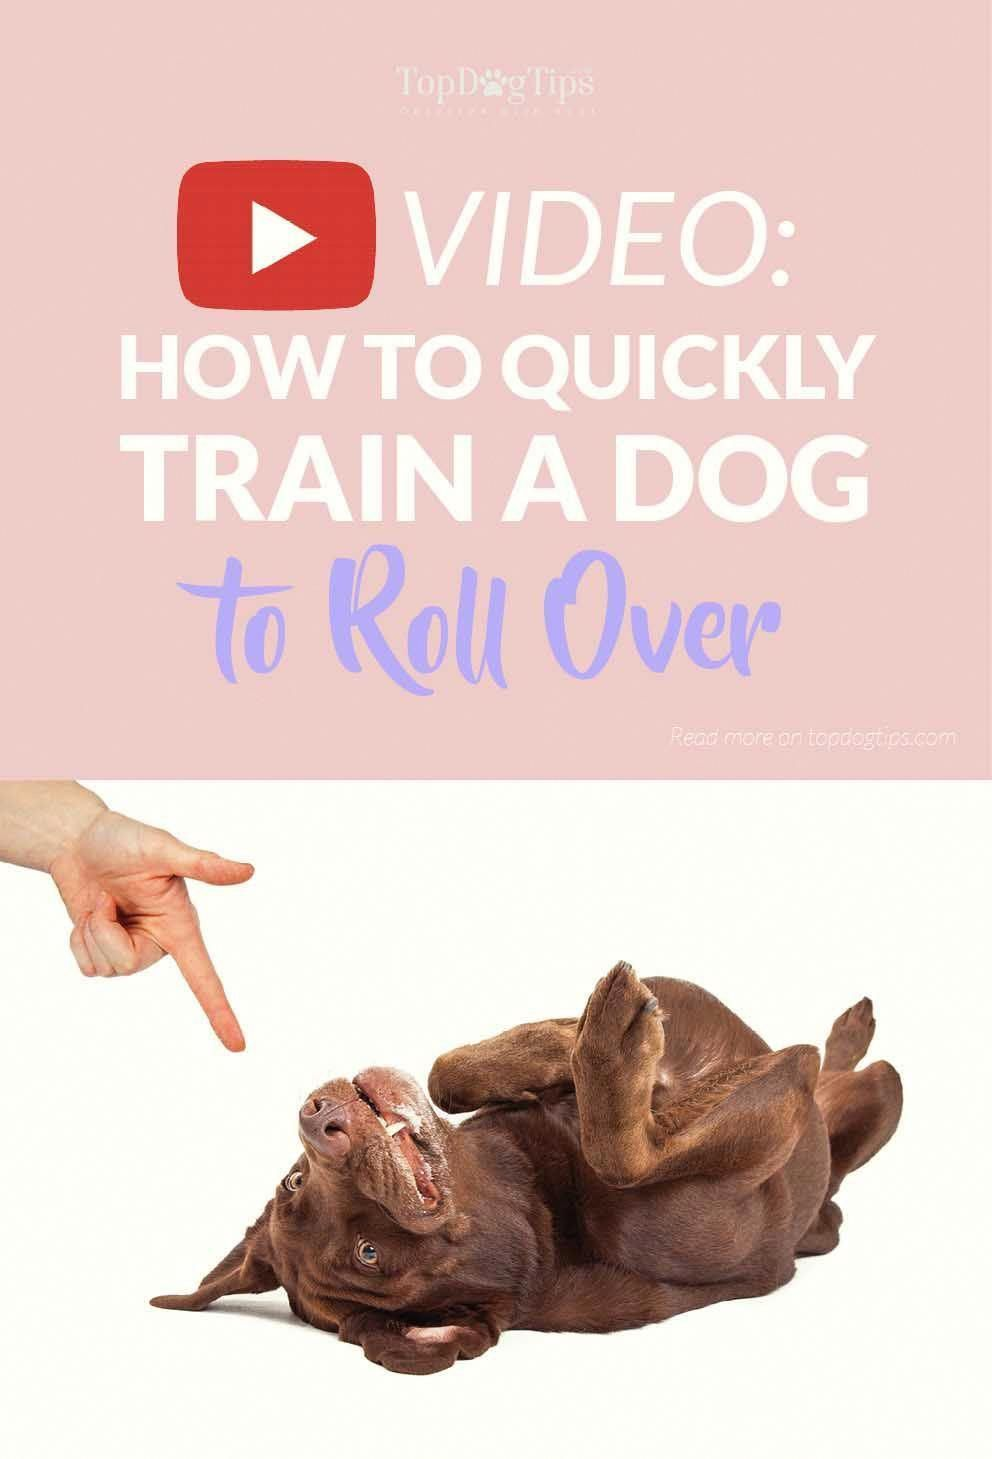 How to train a dog to roll over a quick video guide